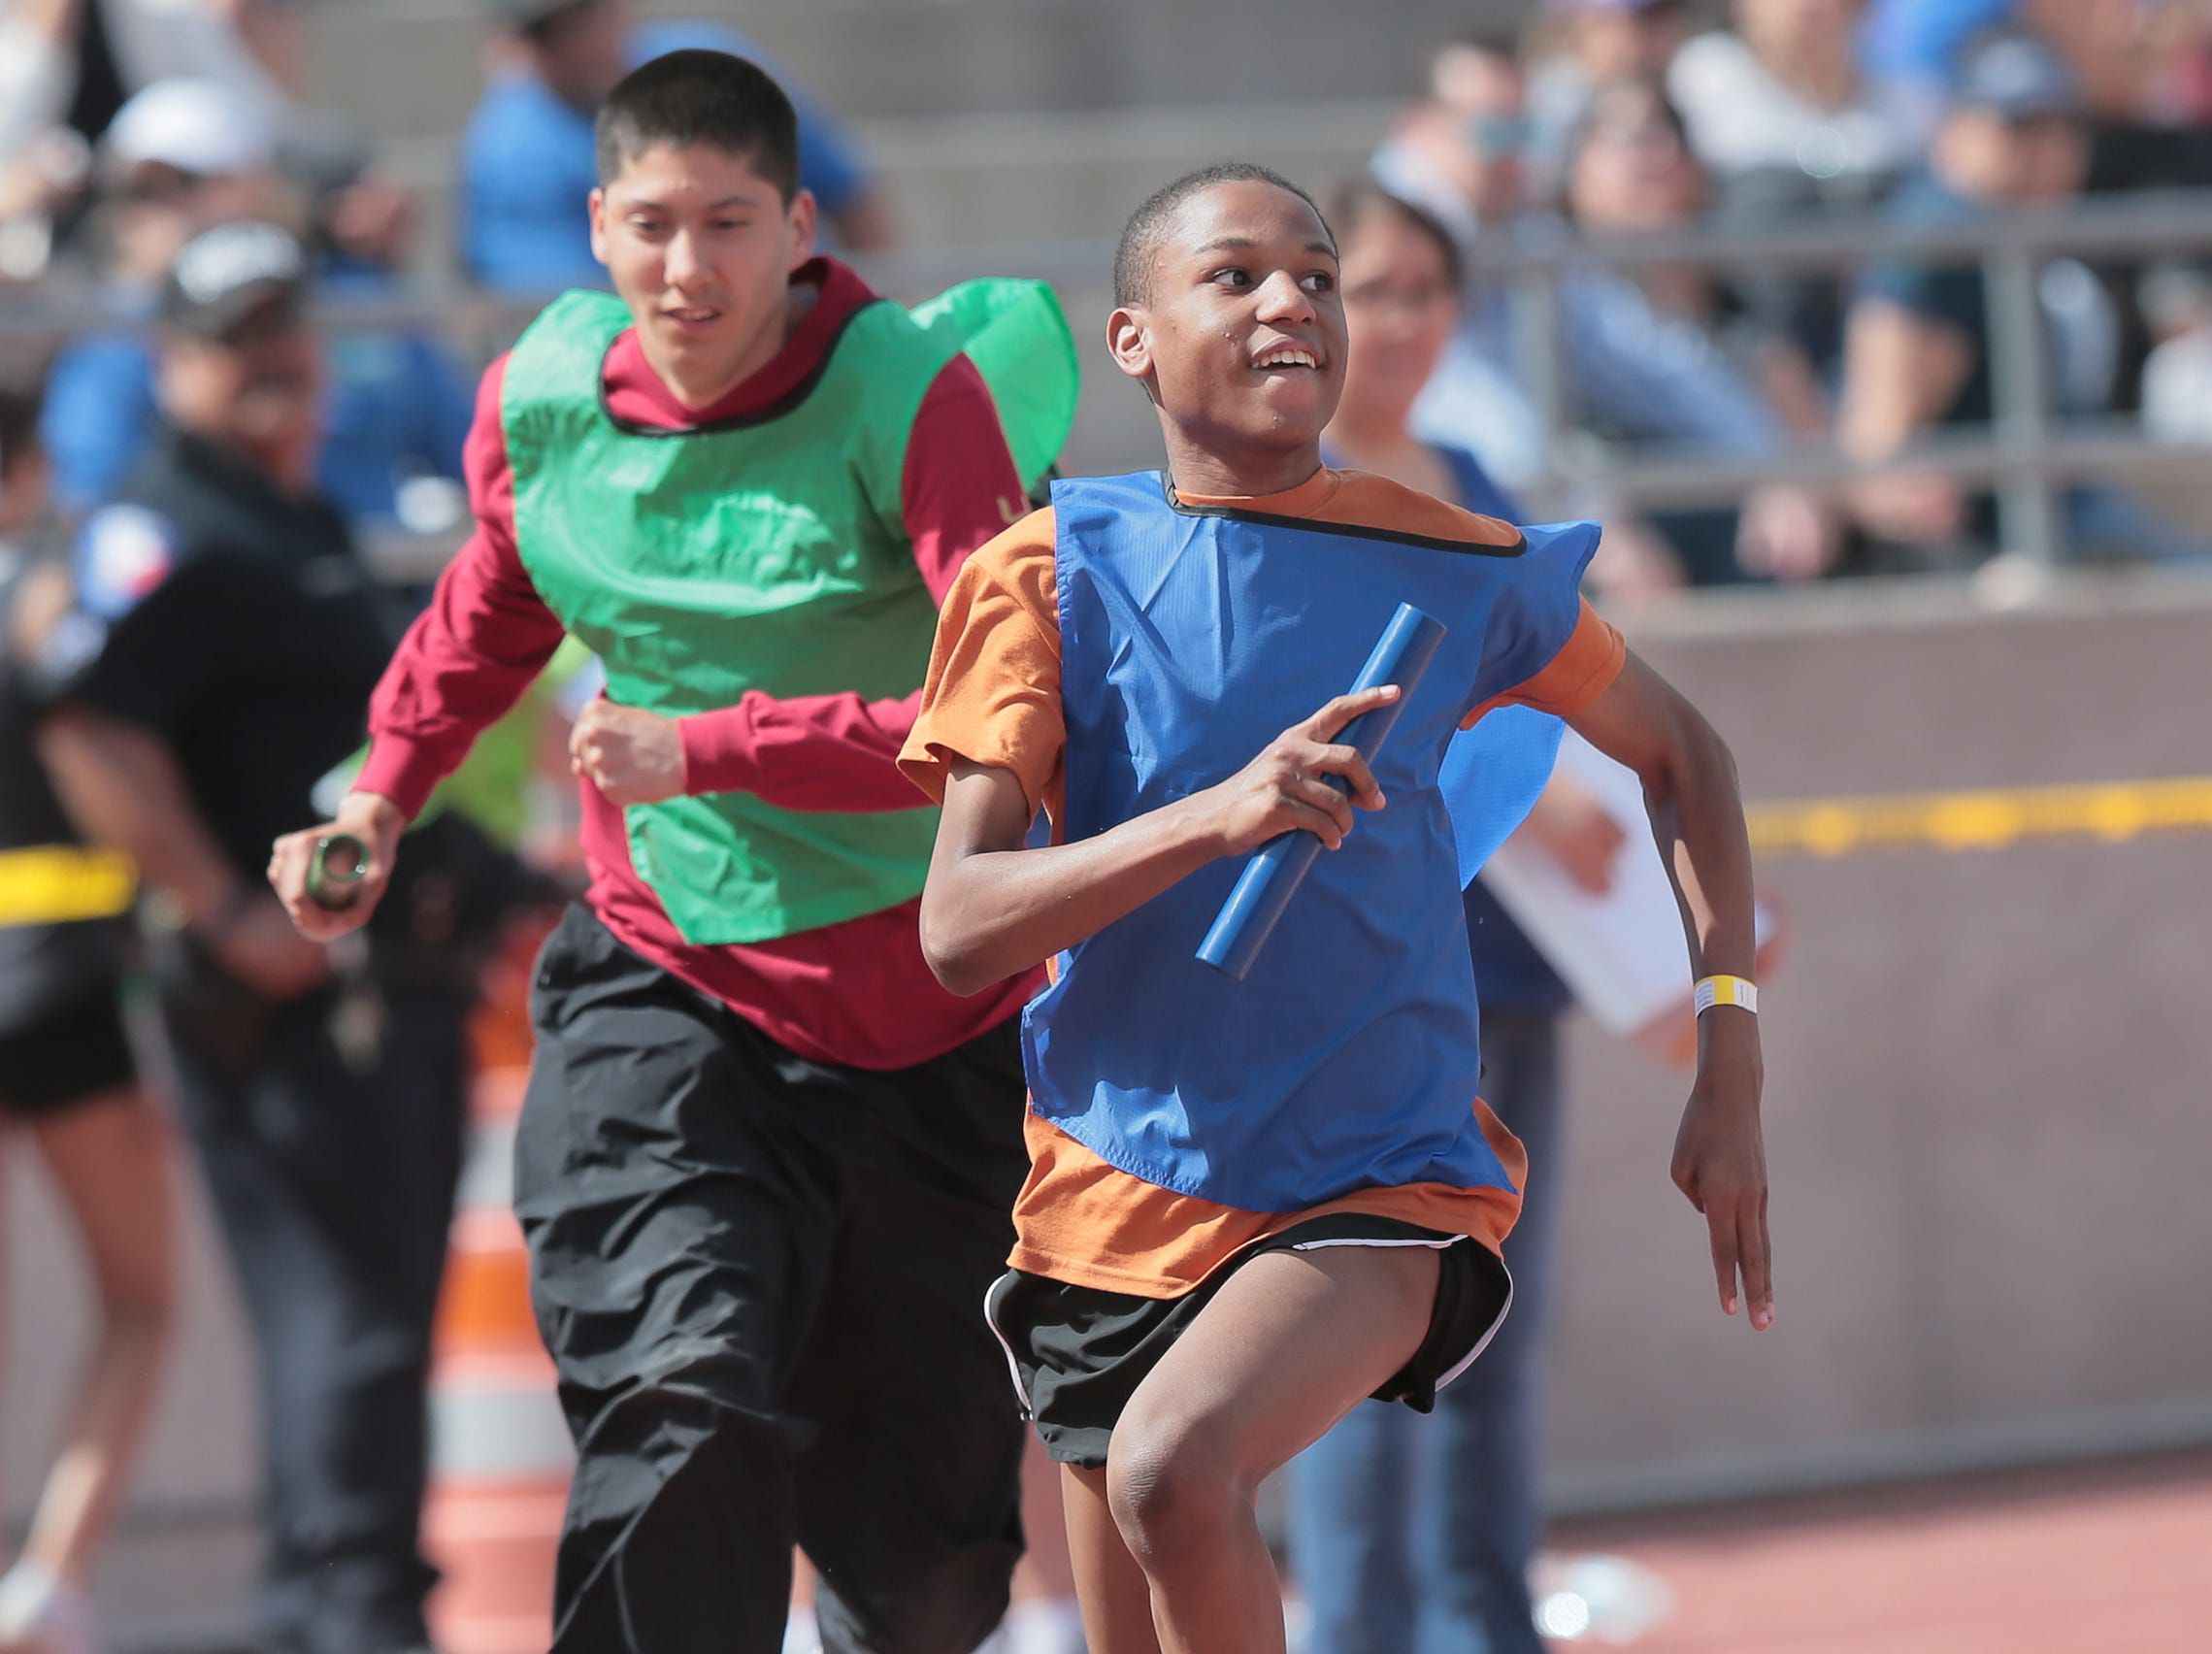 Runners compete Wednesday, April 3, 2019, in the Socorro Independent School District's annual Spring Games. More than 1,000 students competed in a variety of track events.